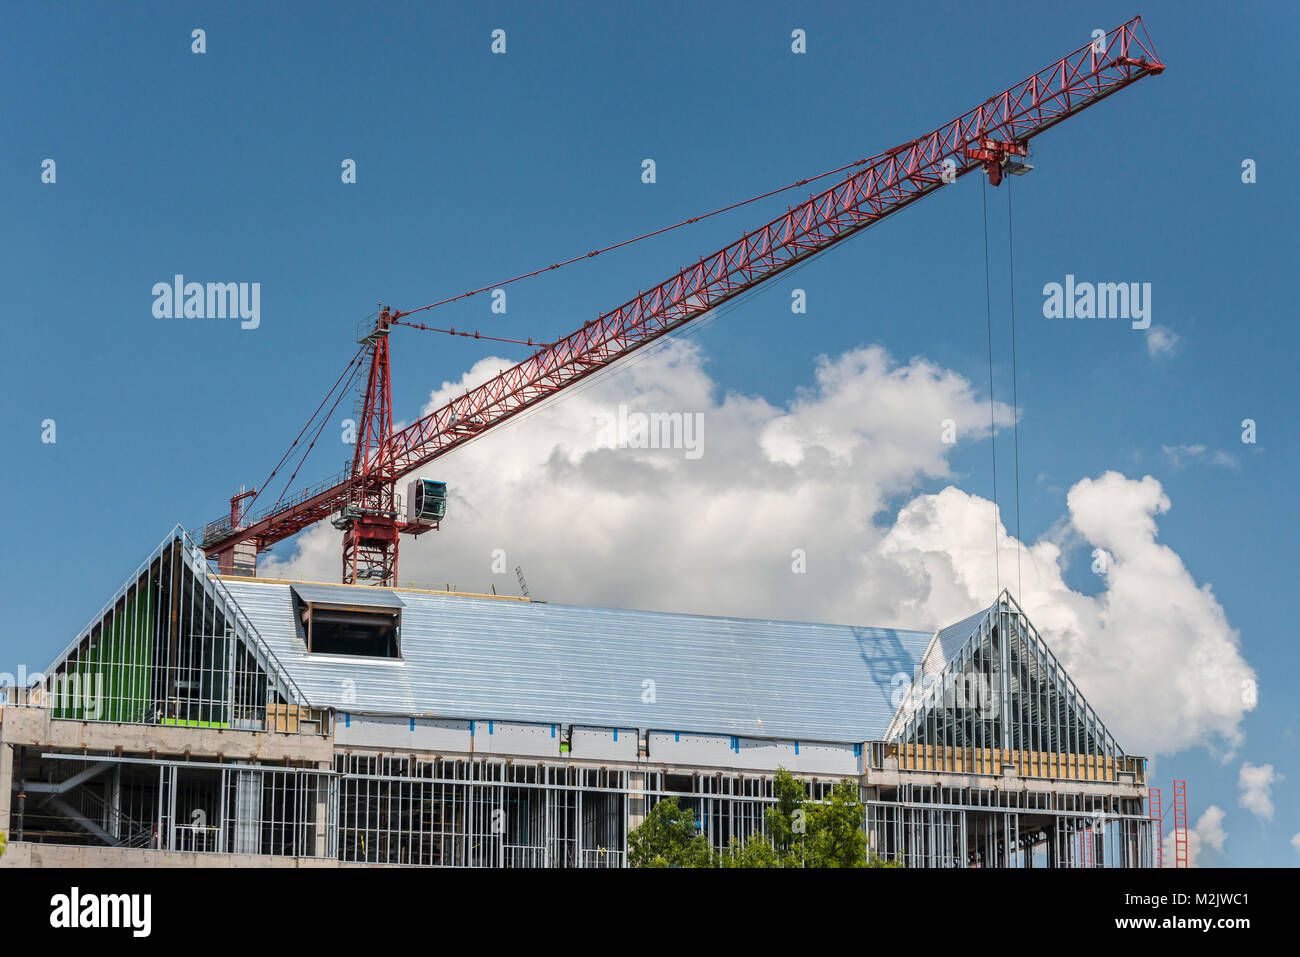 Horizontal shot of a red construction crane over the top of a building. - Stock Image